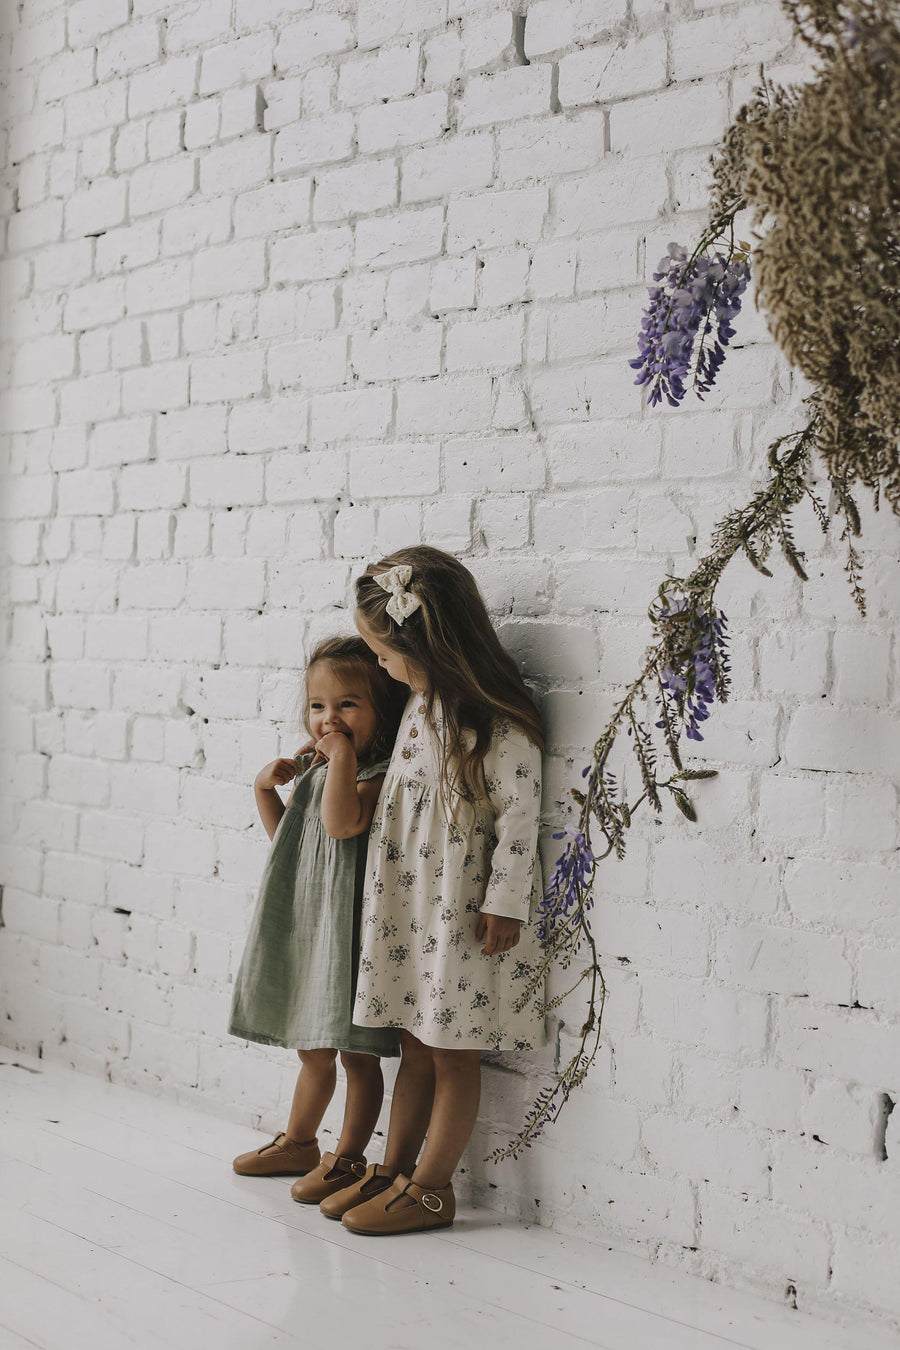 Jamie Kay Meadowlands Lace Dress in Sage at Tiny People Shop Australia.